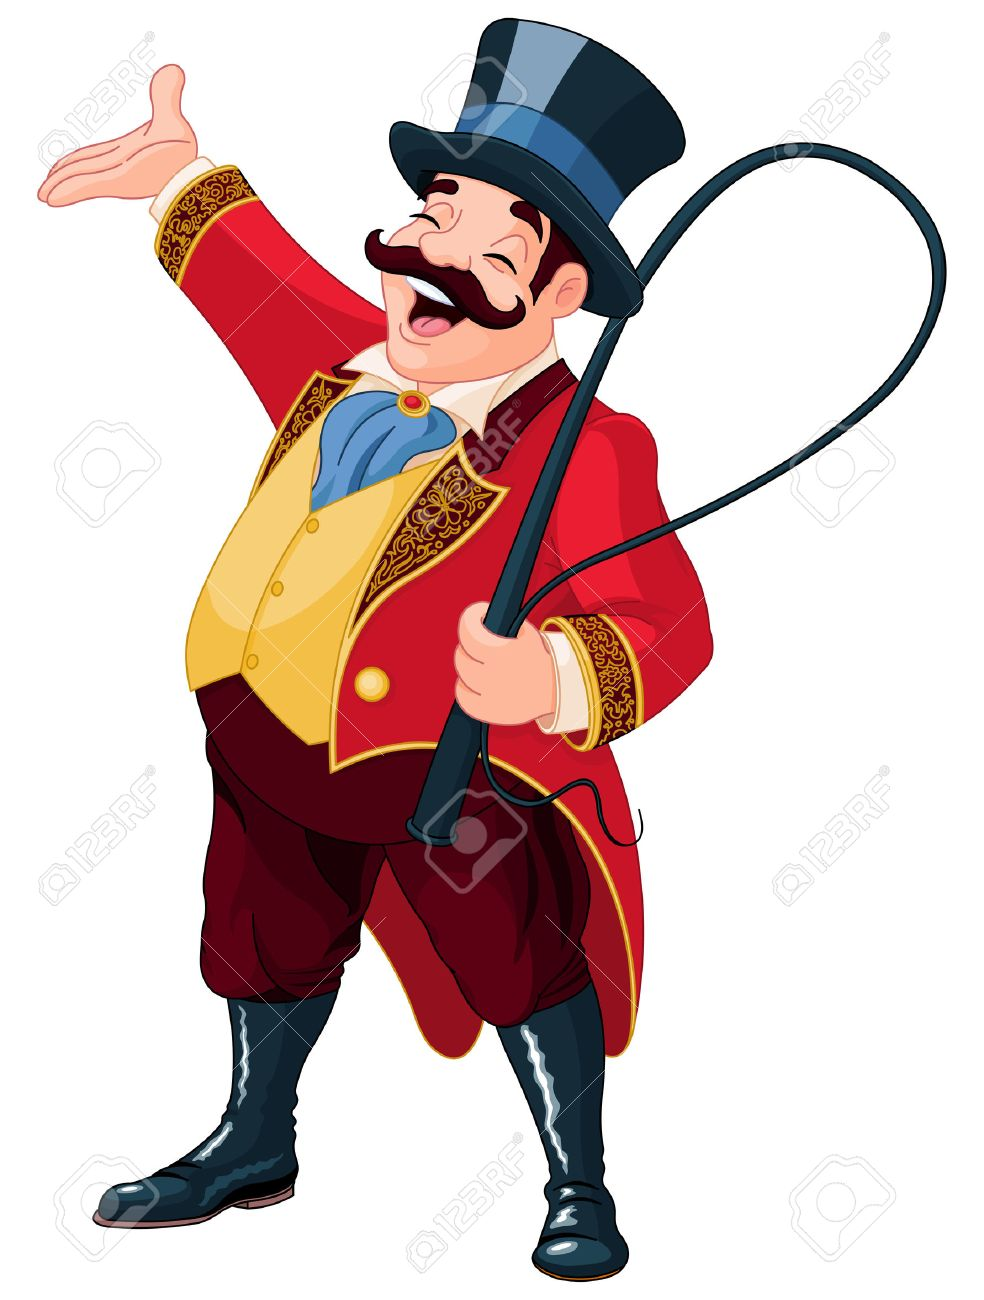 984x1300 Illustration Of Graceful Ringmaster Royalty Free Cliparts, Vectors